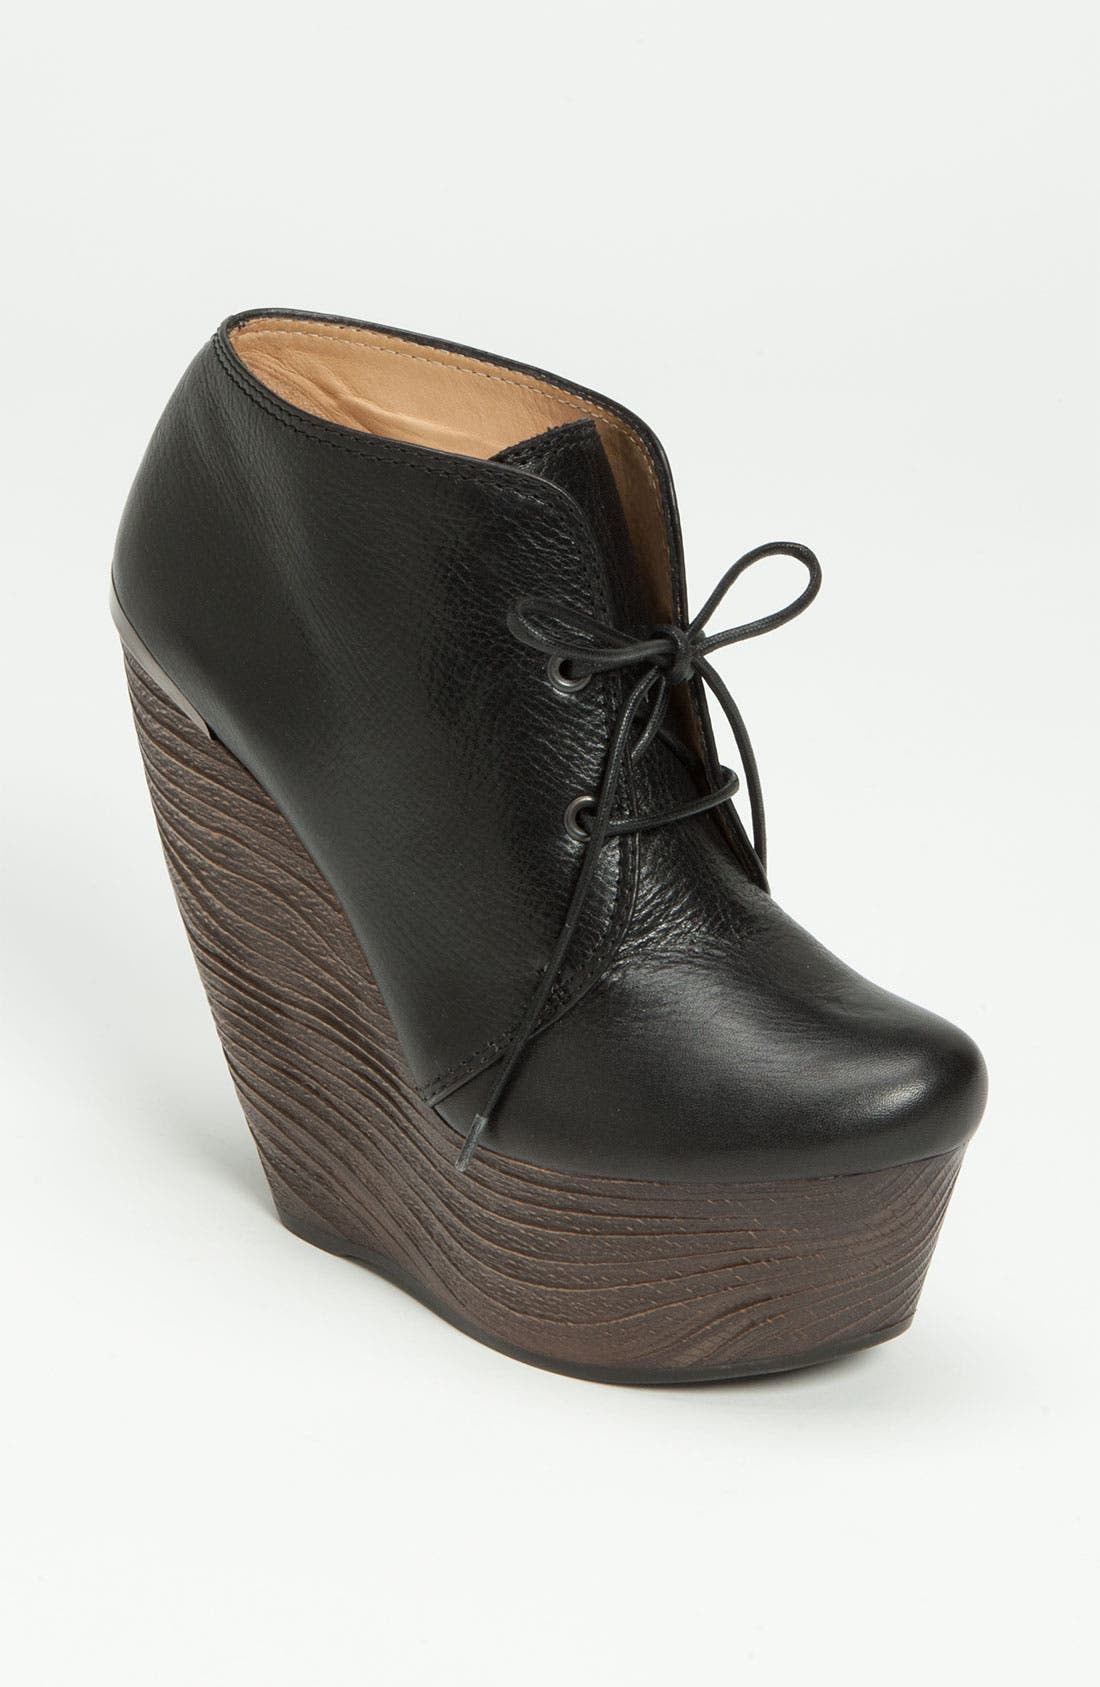 Alternate Image 1 Selected - Lanvin 'Crazy' Wedge Oxford